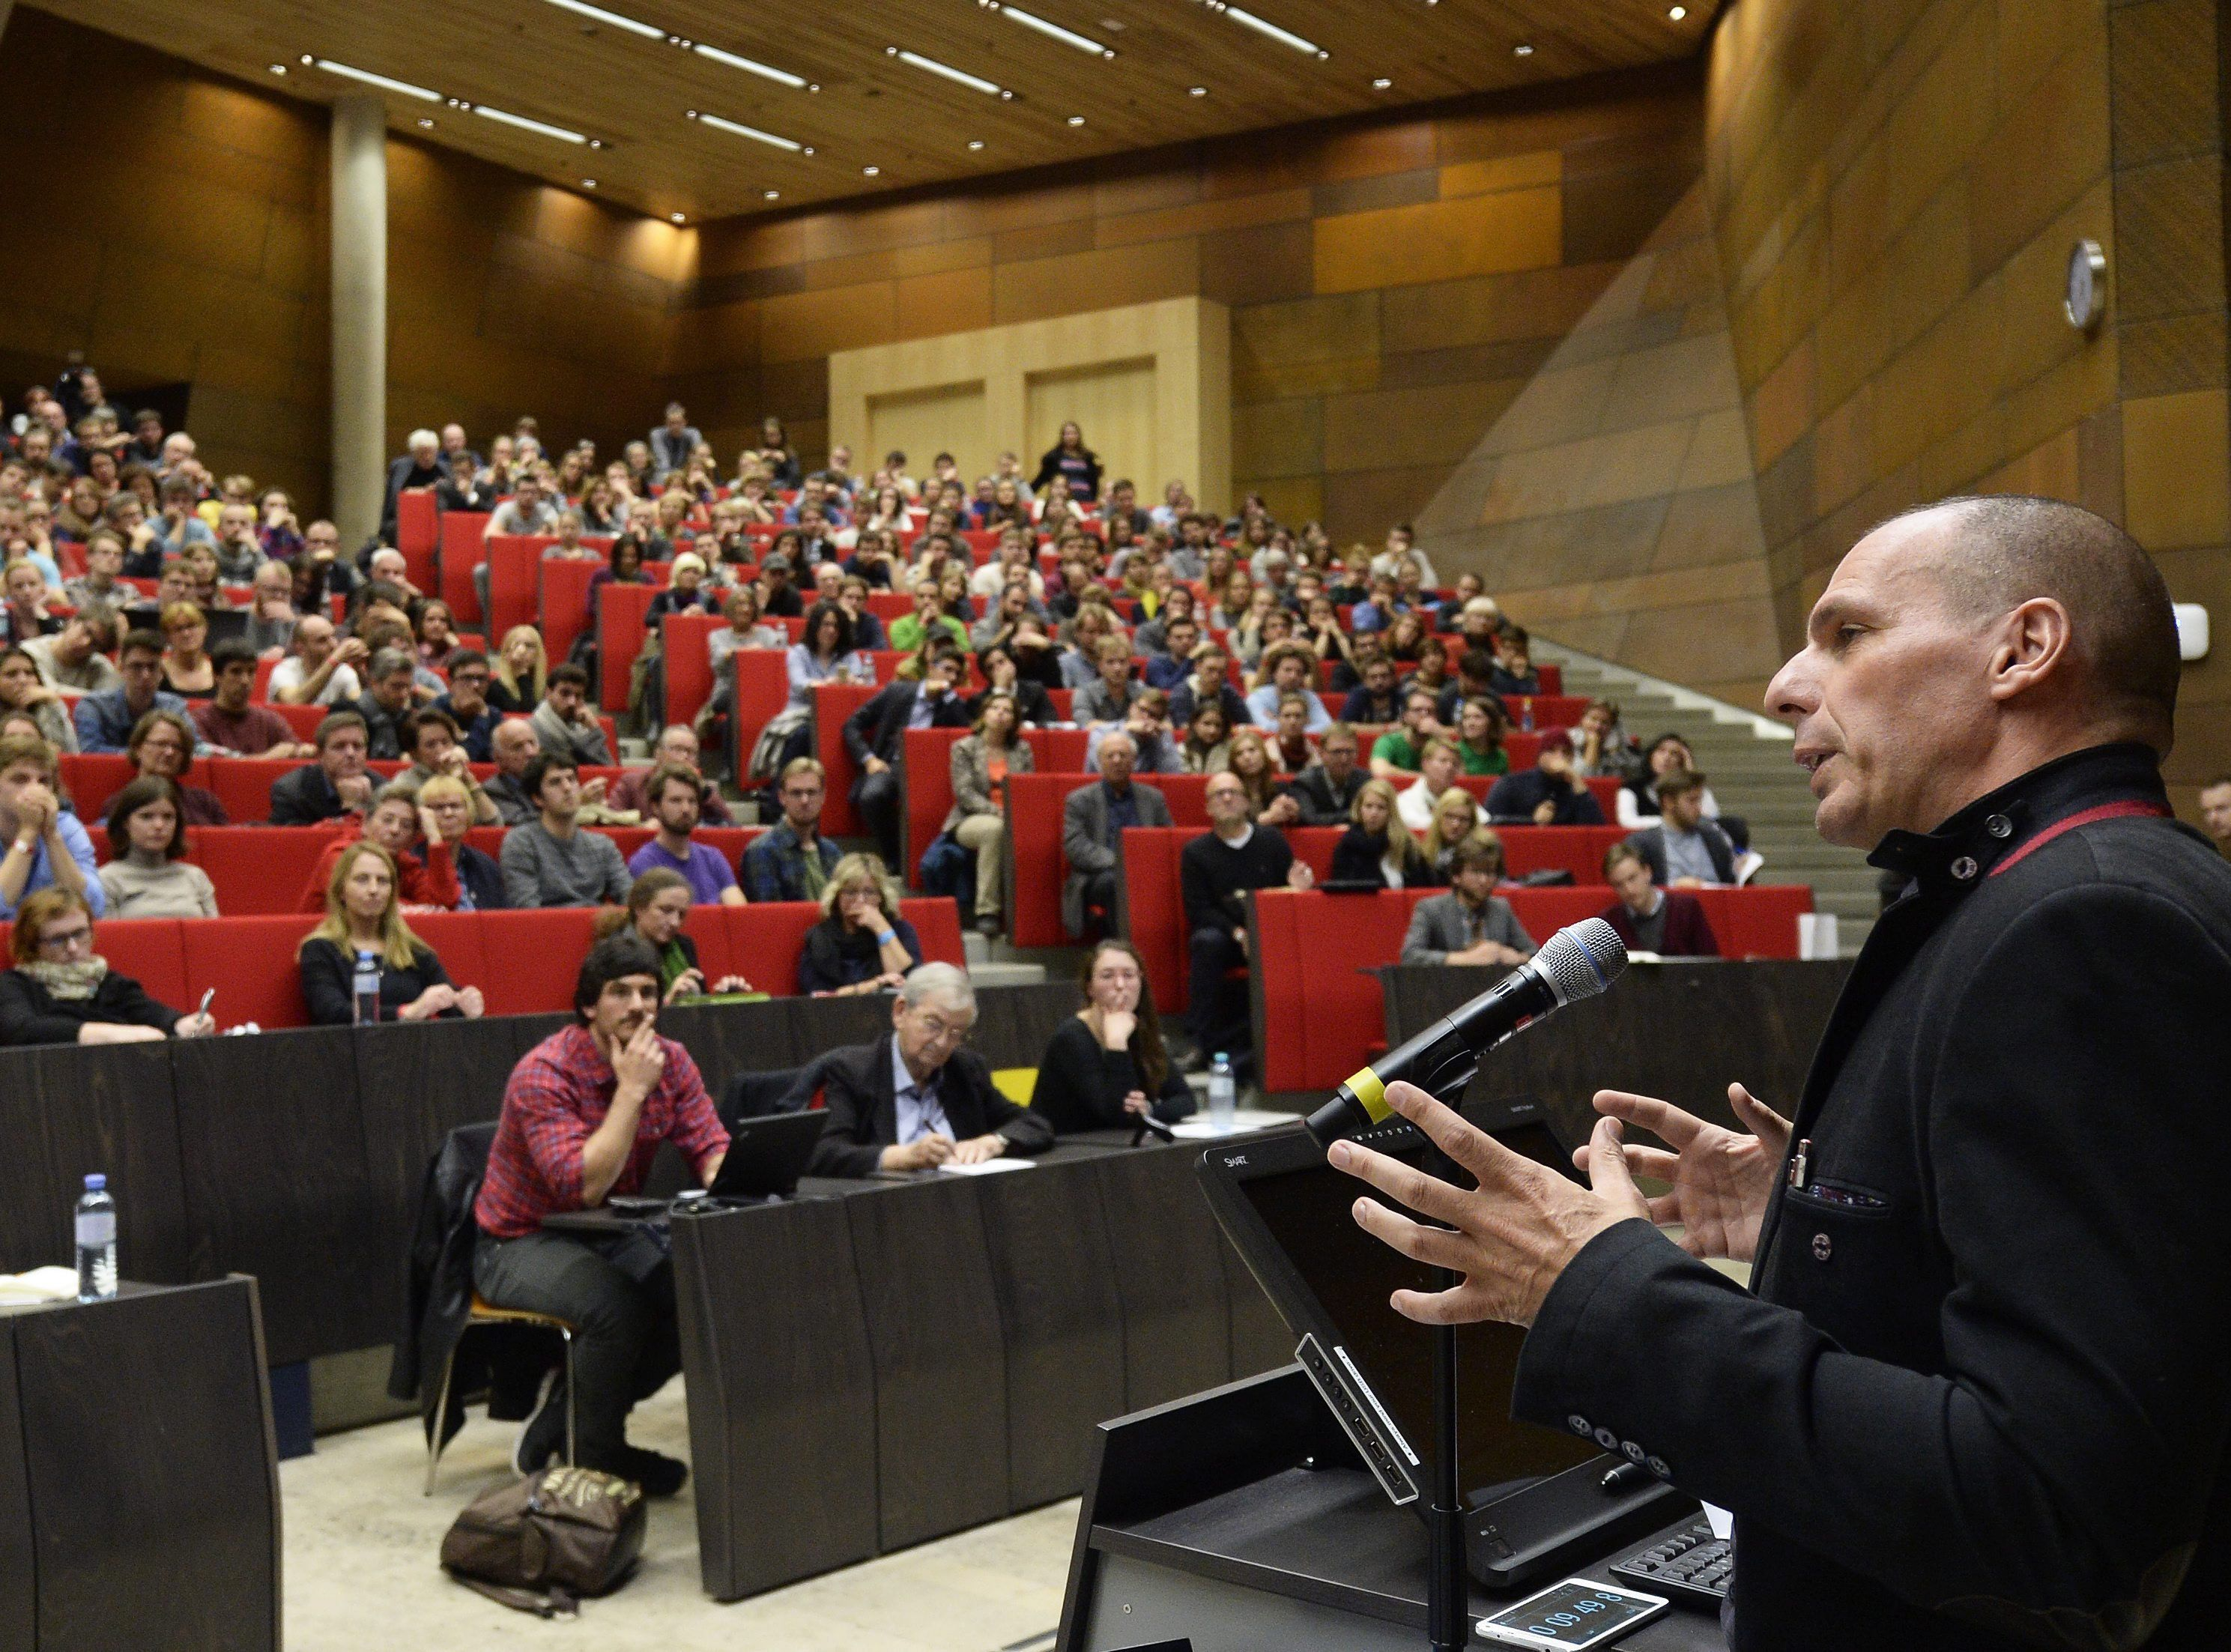 AUSTRIA VAROUFAKIS PANEL DISCUSSION